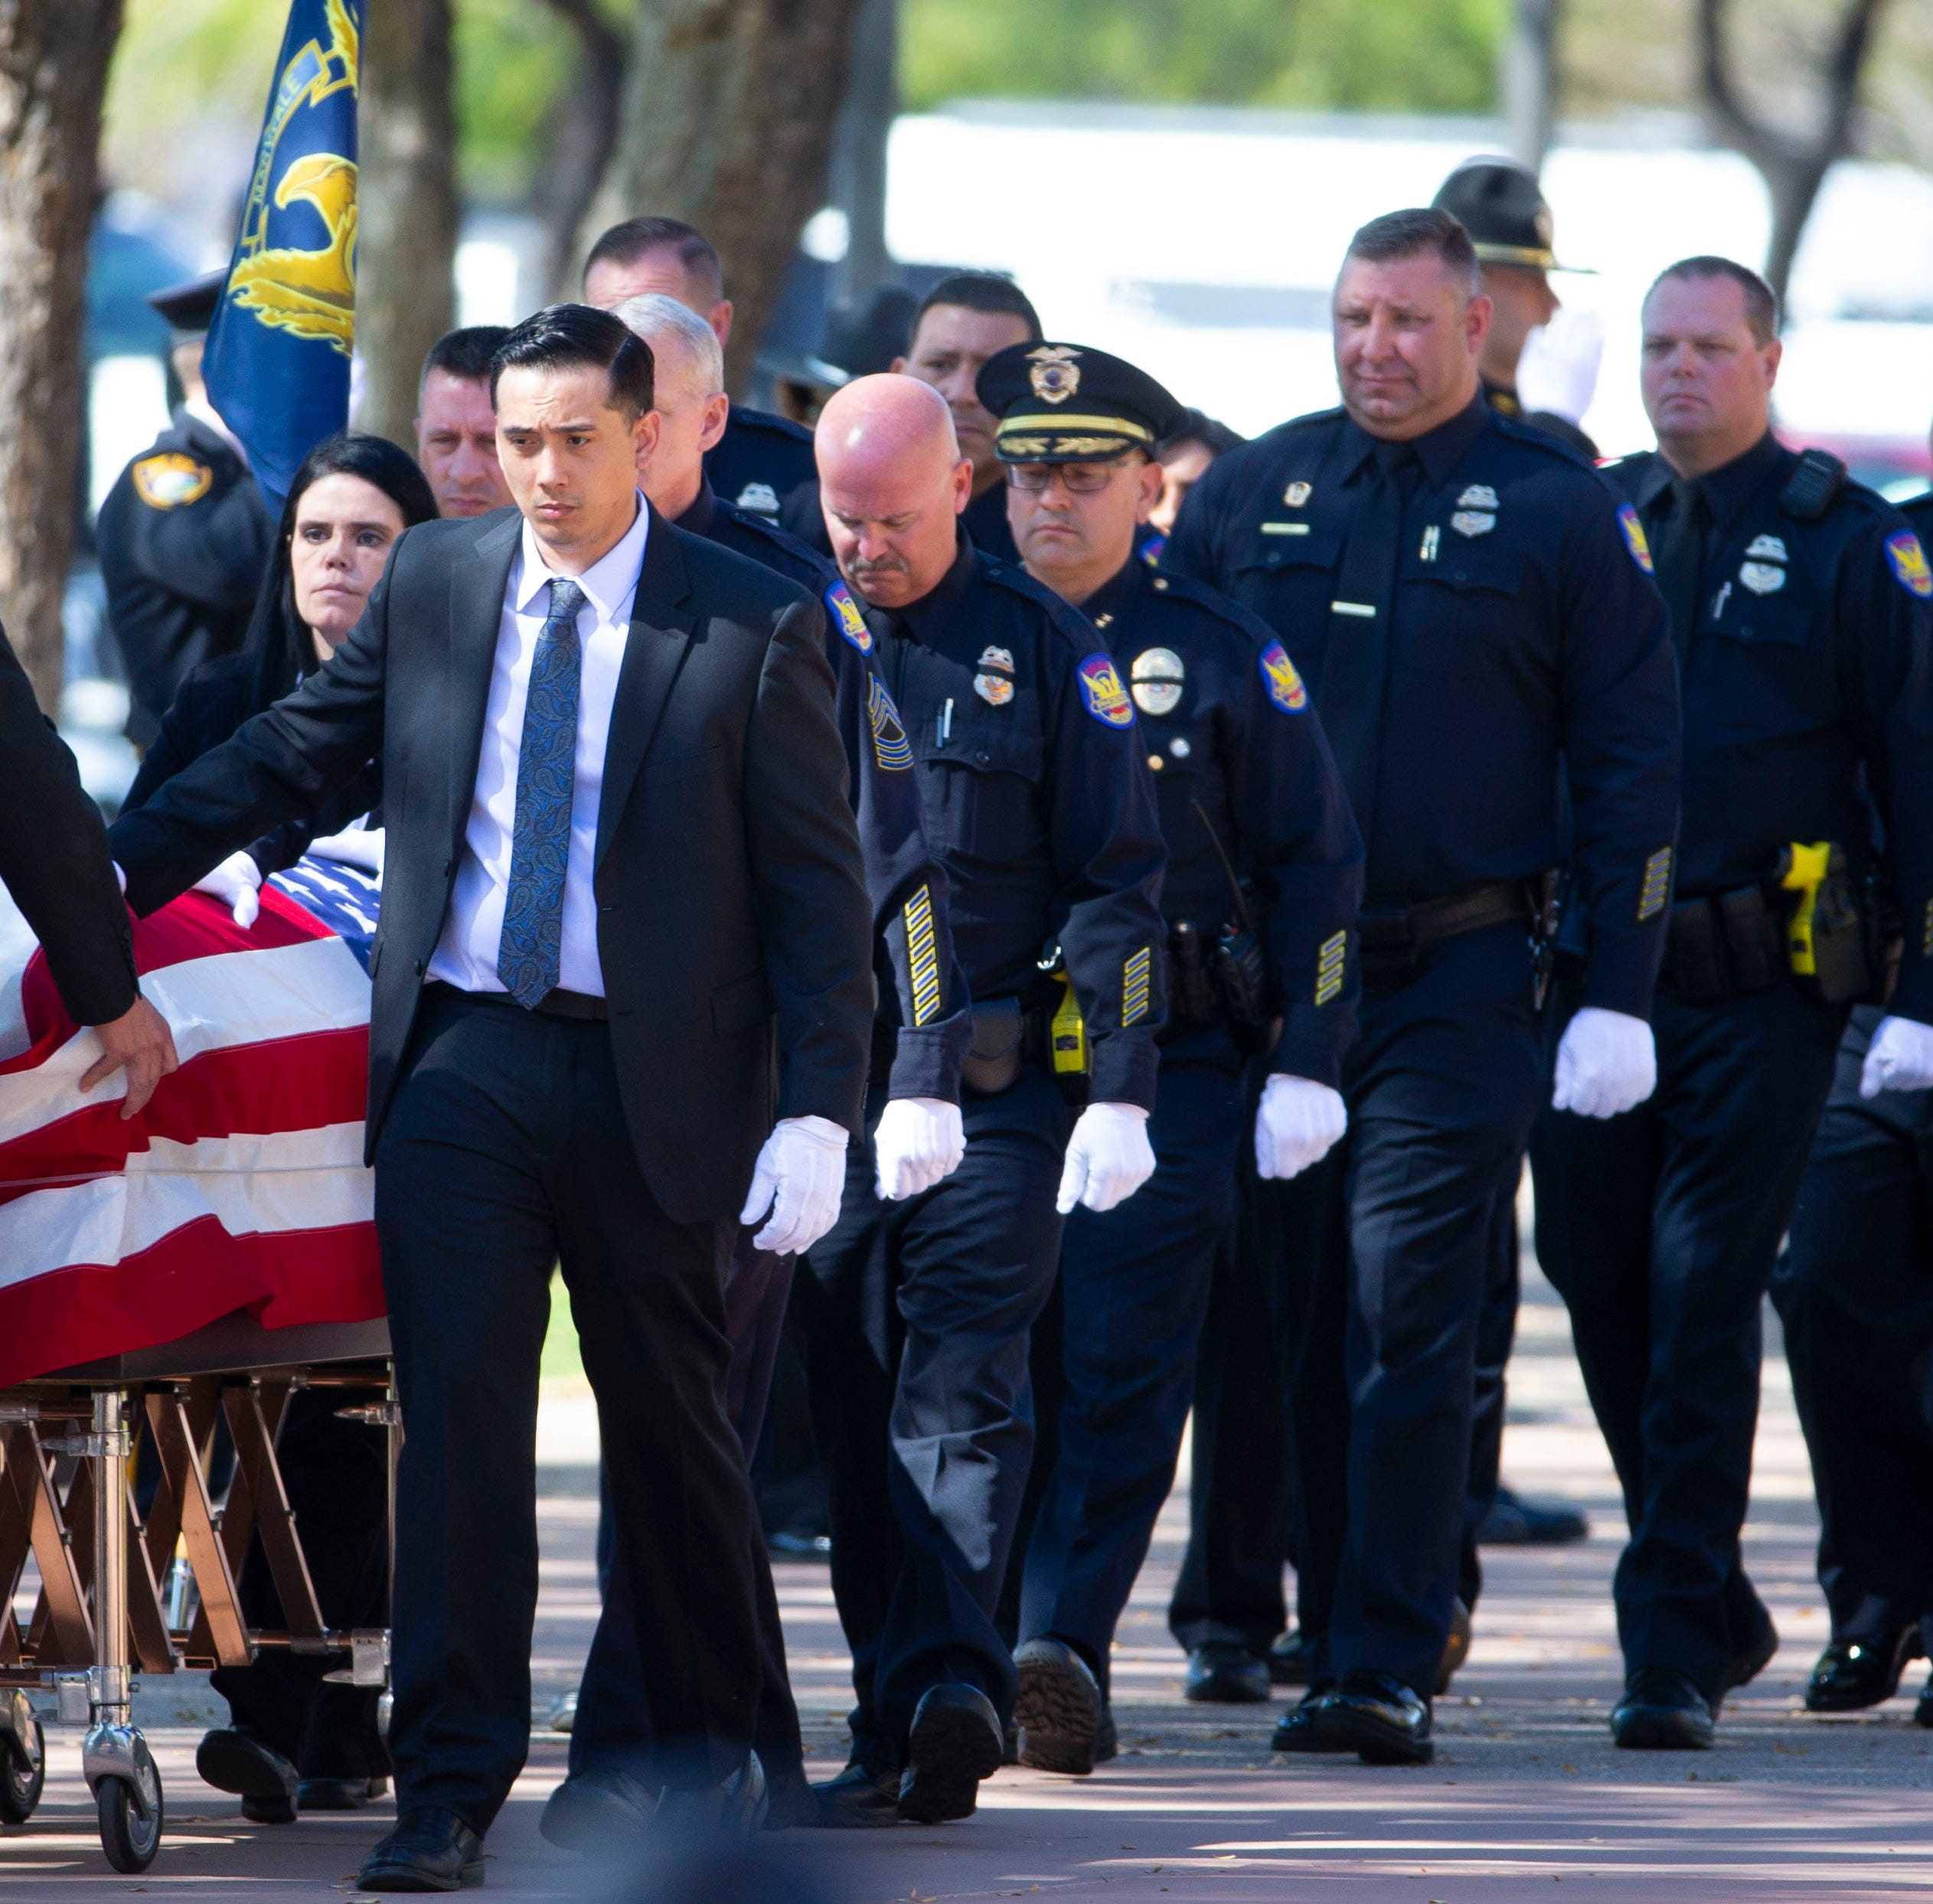 'A true hero': Hundreds attend funeral for Phoenix police Officer Paul Rutherford